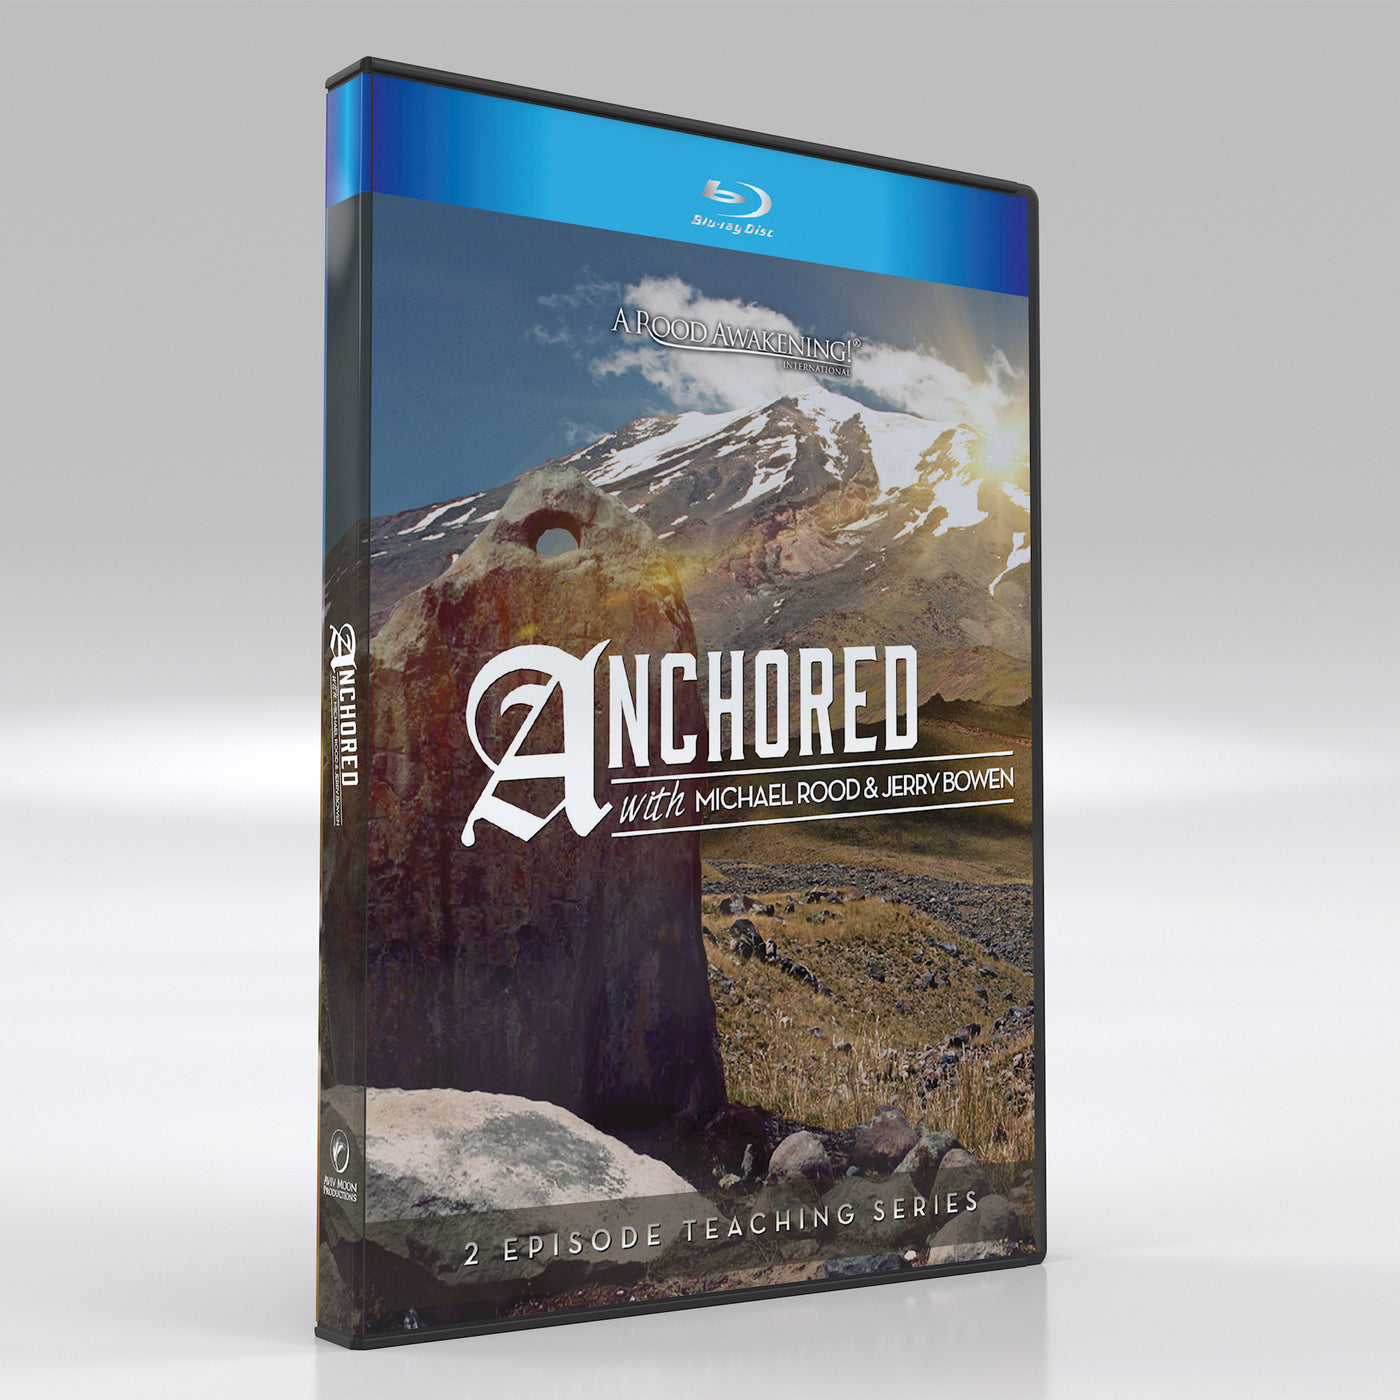 Anchored - Noah's Ark with Michael Rood and Jerry Bowen